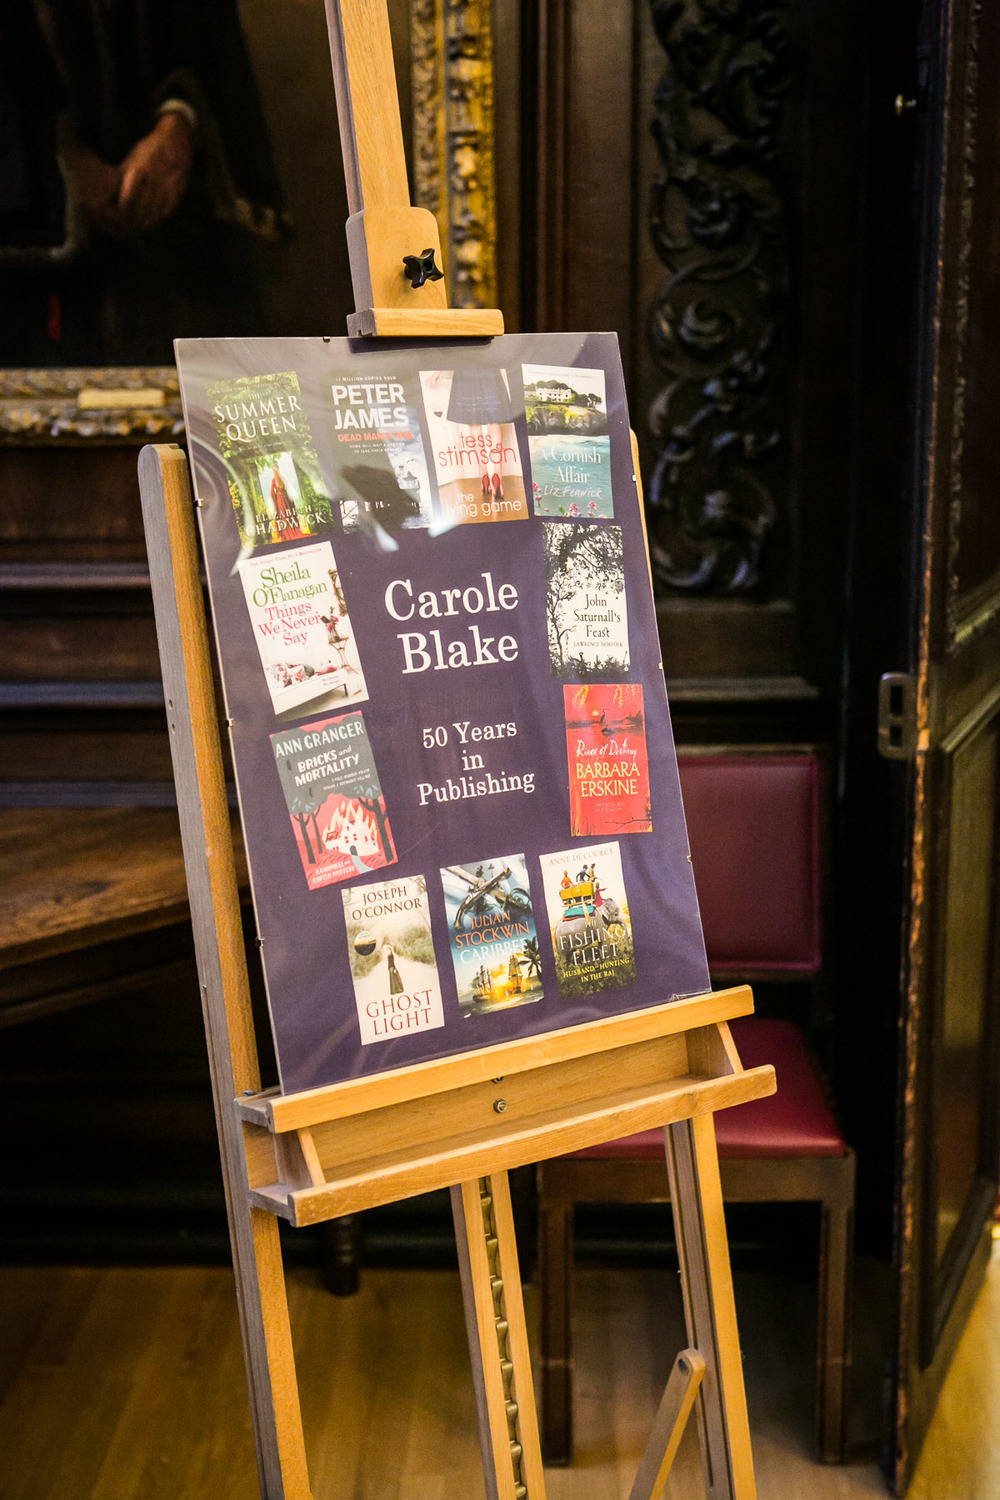 Carole Blake's Authors' Covers